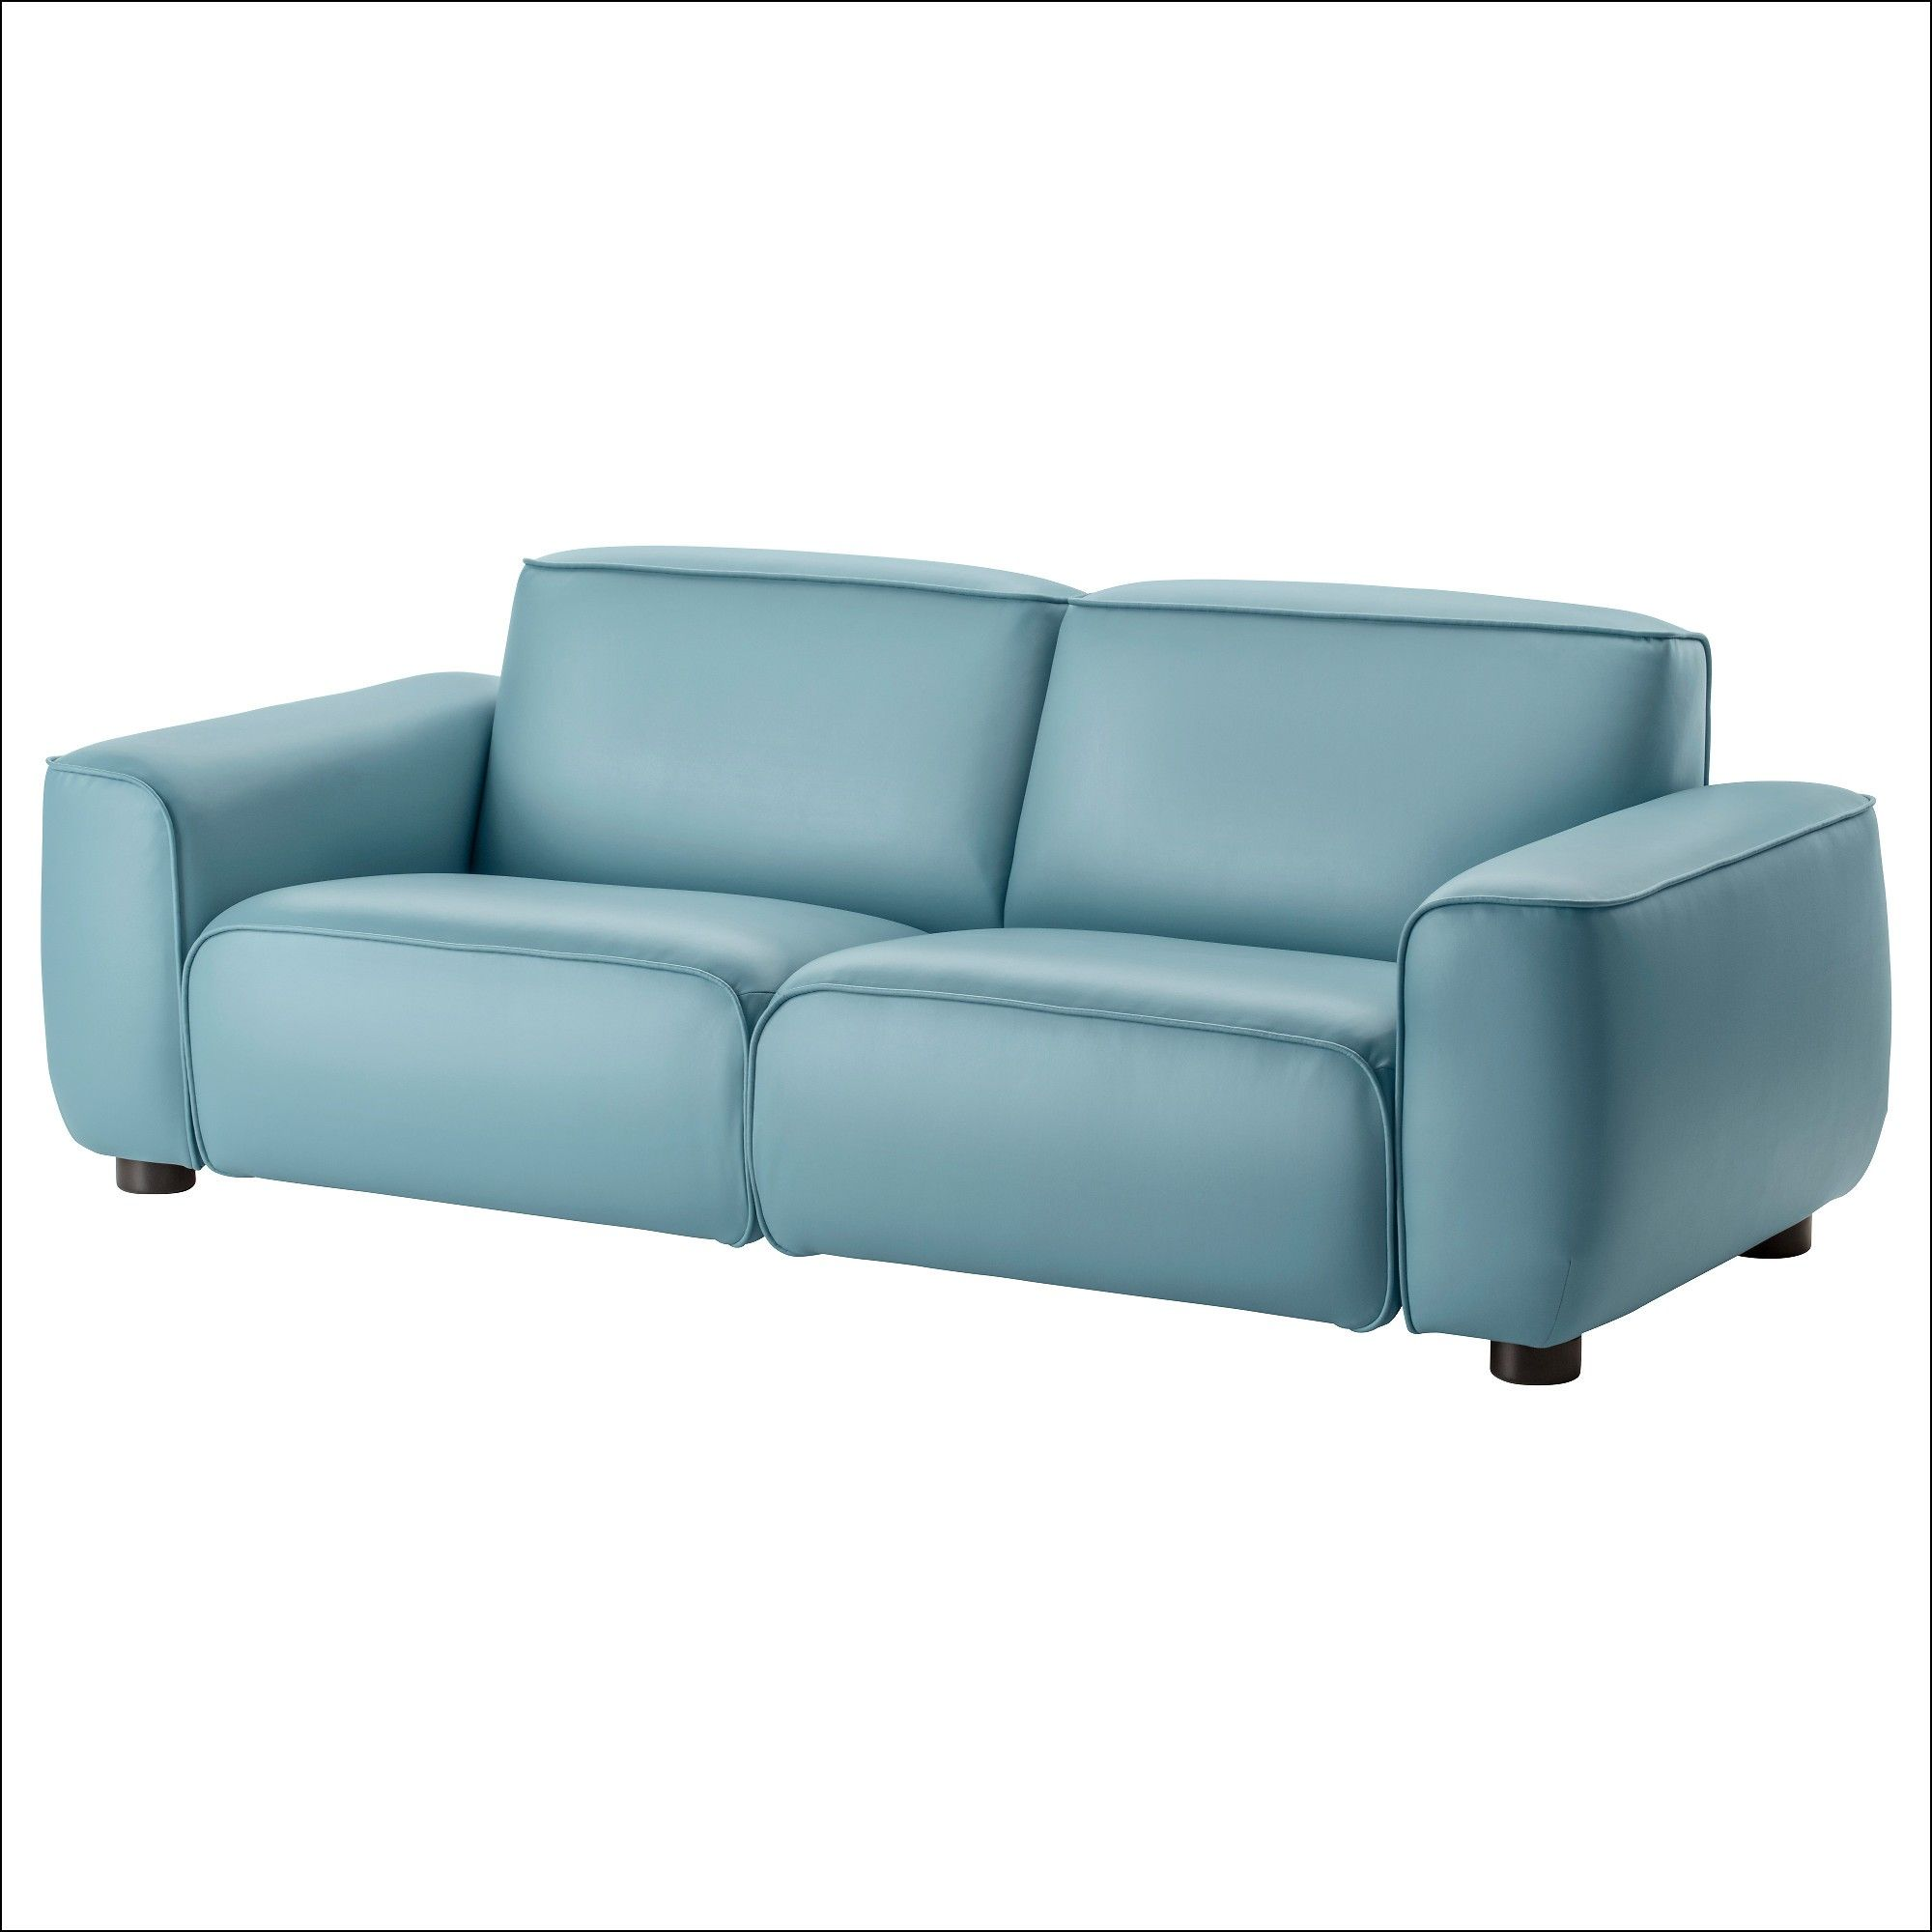 Blue Leather sofa Ikea | Sofa | Blue leather sofa, Ikea sofa ...